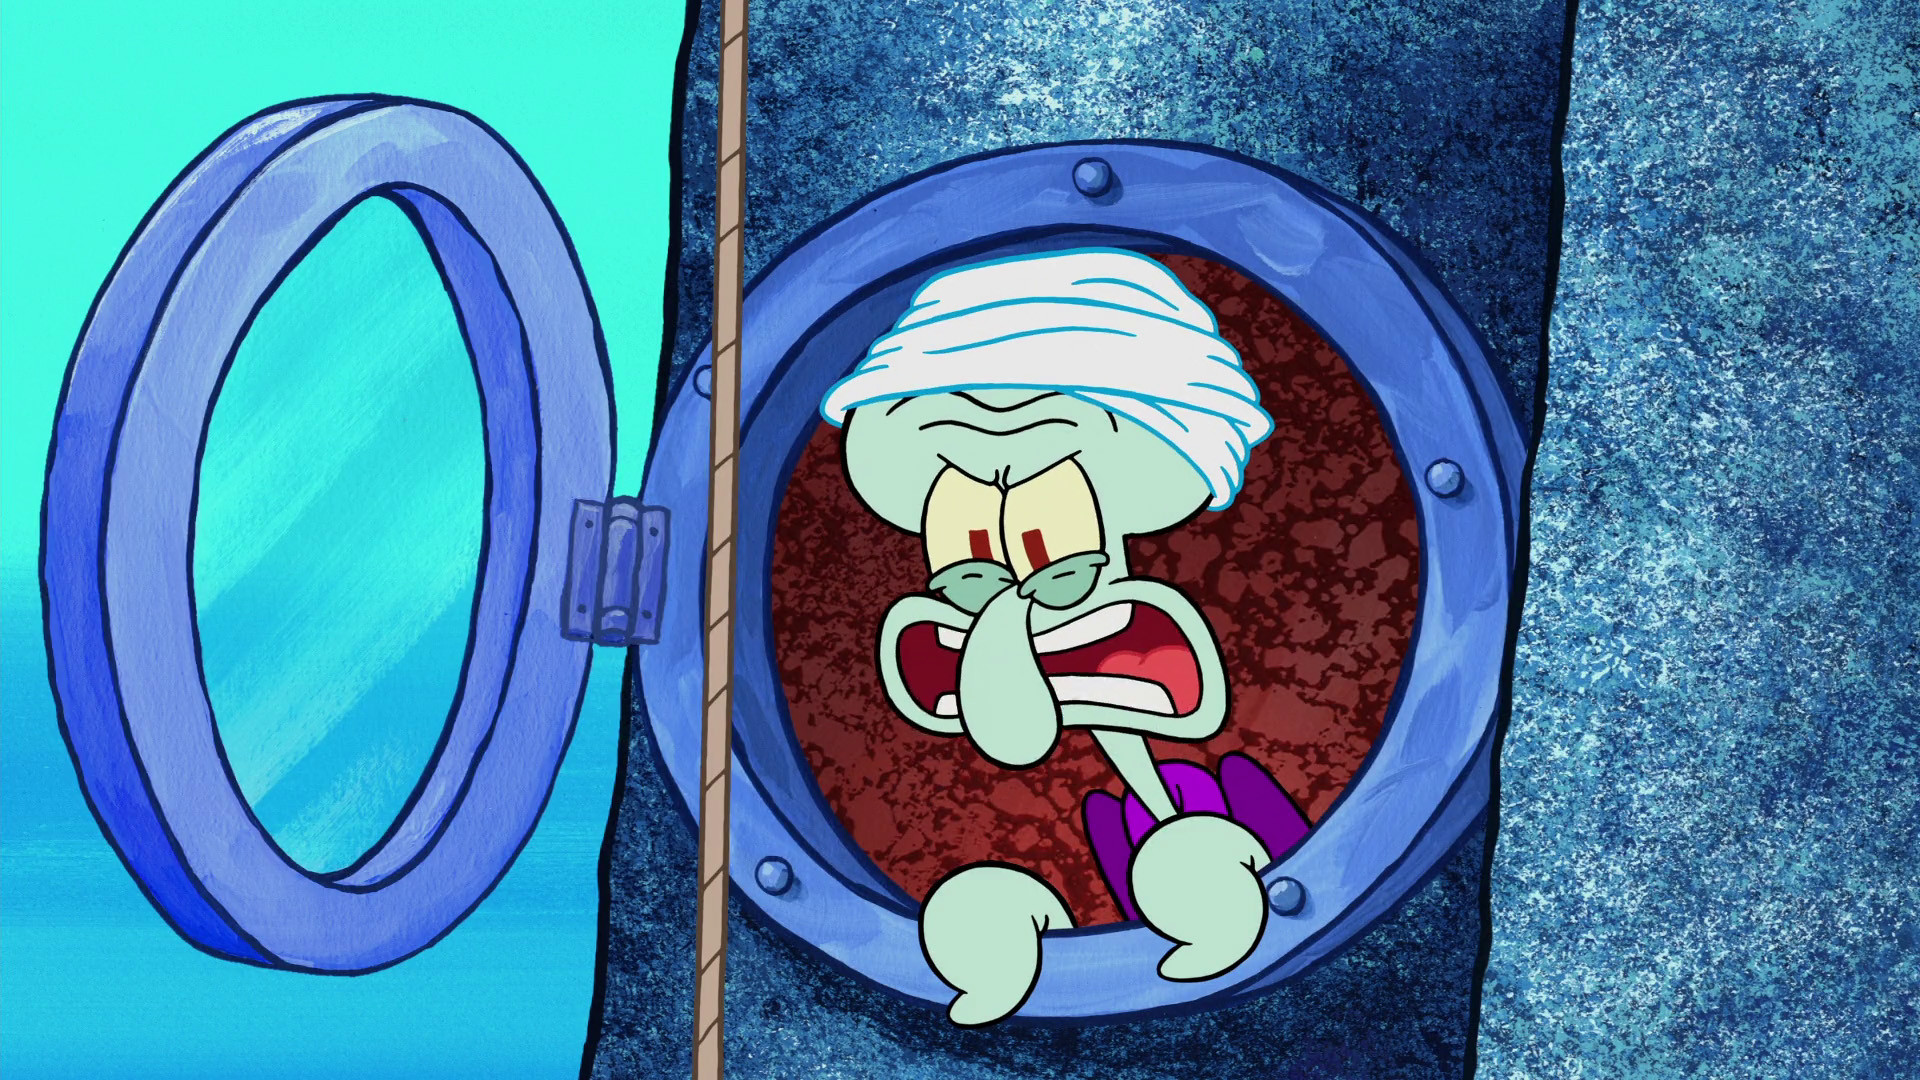 Res: 1920x1080, Squidward Tentacles Wallpapers New Tab